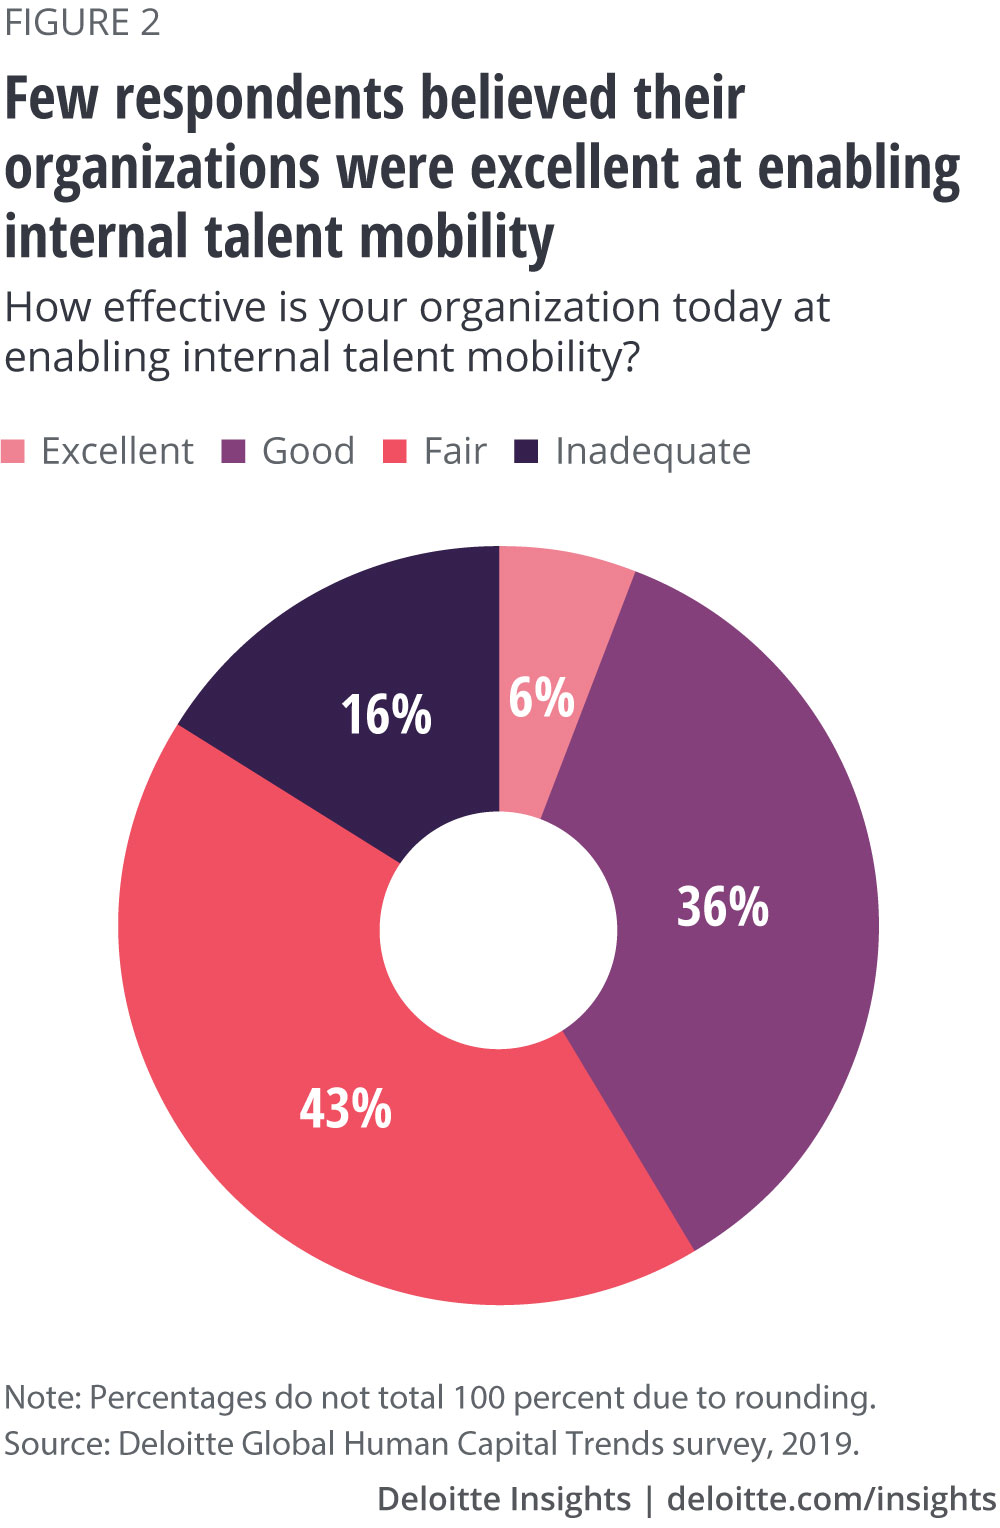 Few respondents believed their organizations were excellent at enabling internal mobility